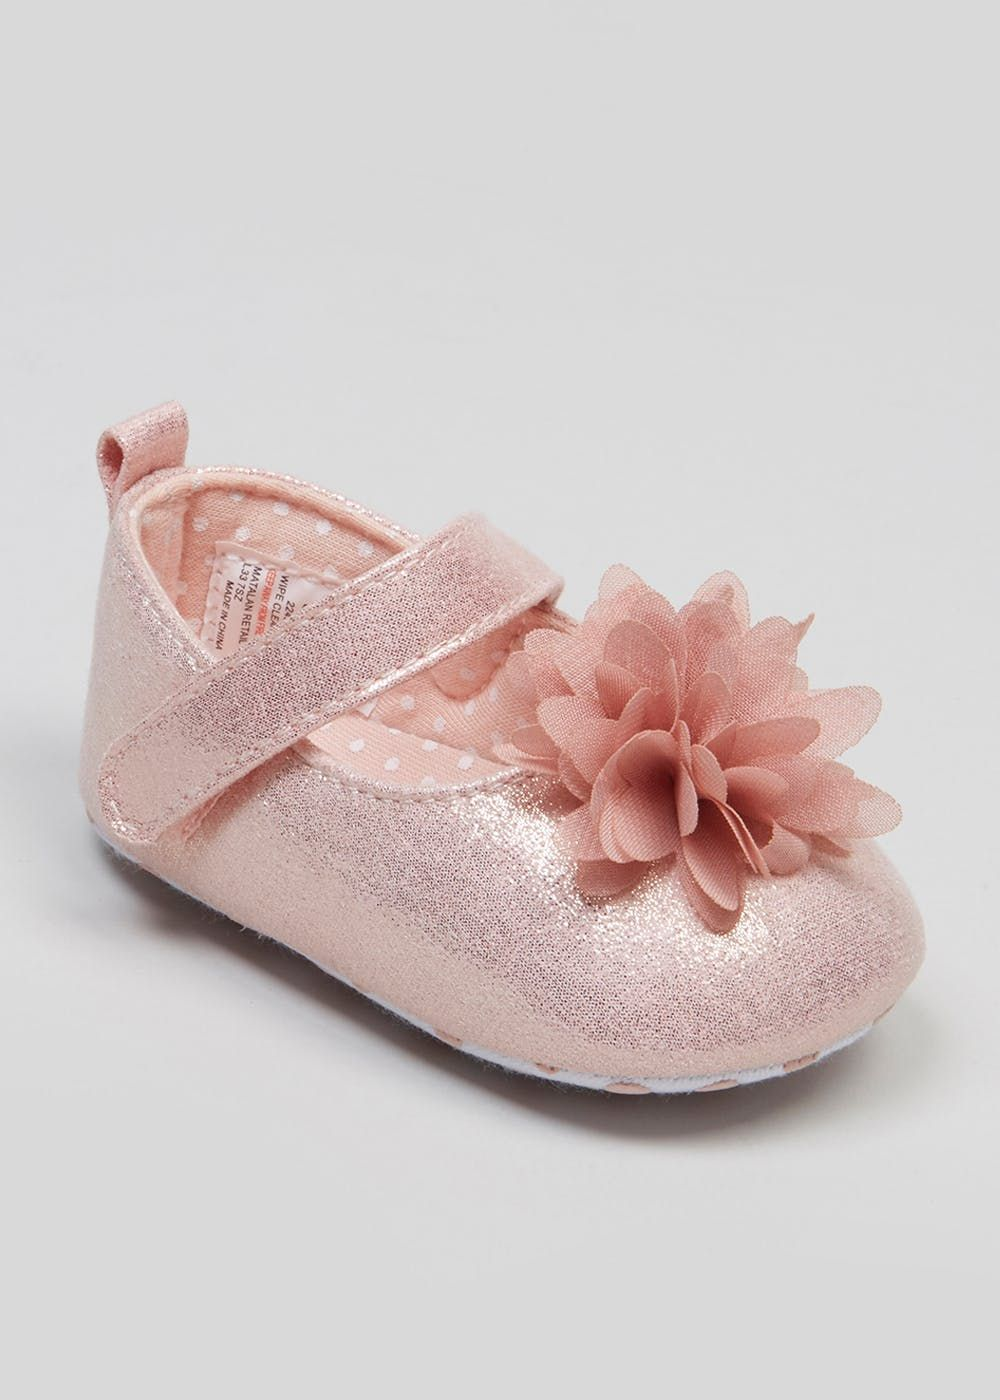 3112bdb90fb5 Girls Soft Sole Occasion Baby Shoes (Newborn-18mths) – Pink – Matalan